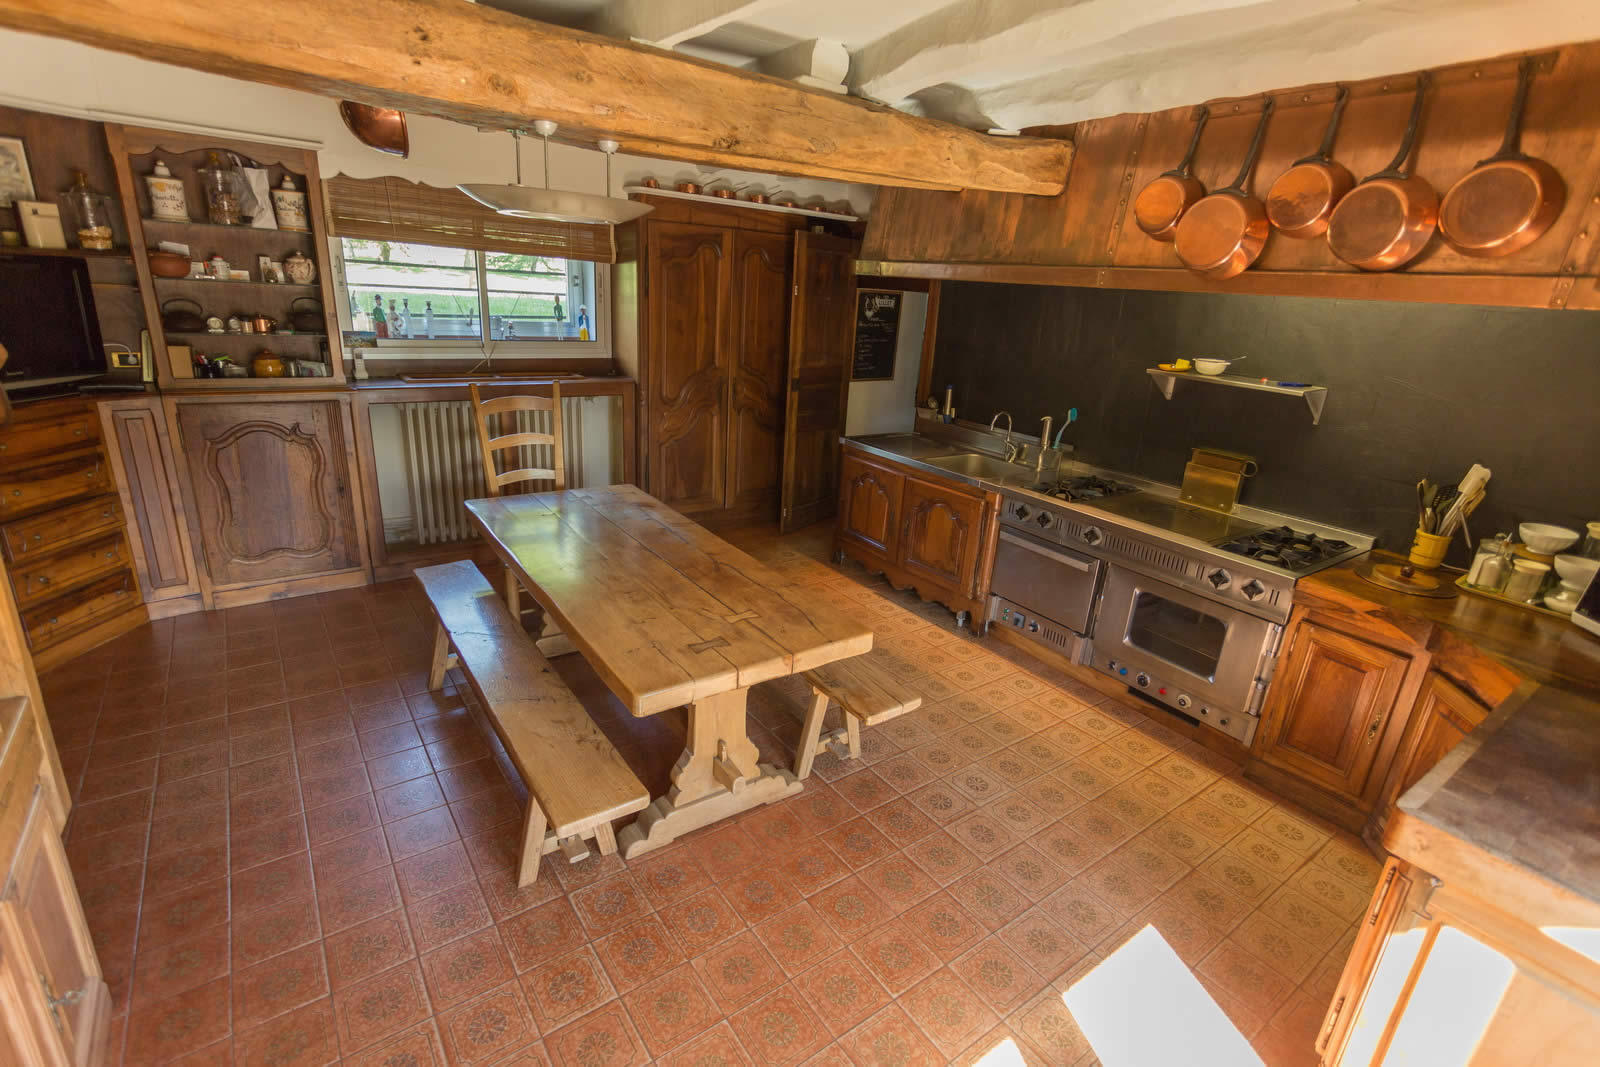 house with character for sale in durbans périgord fireplace